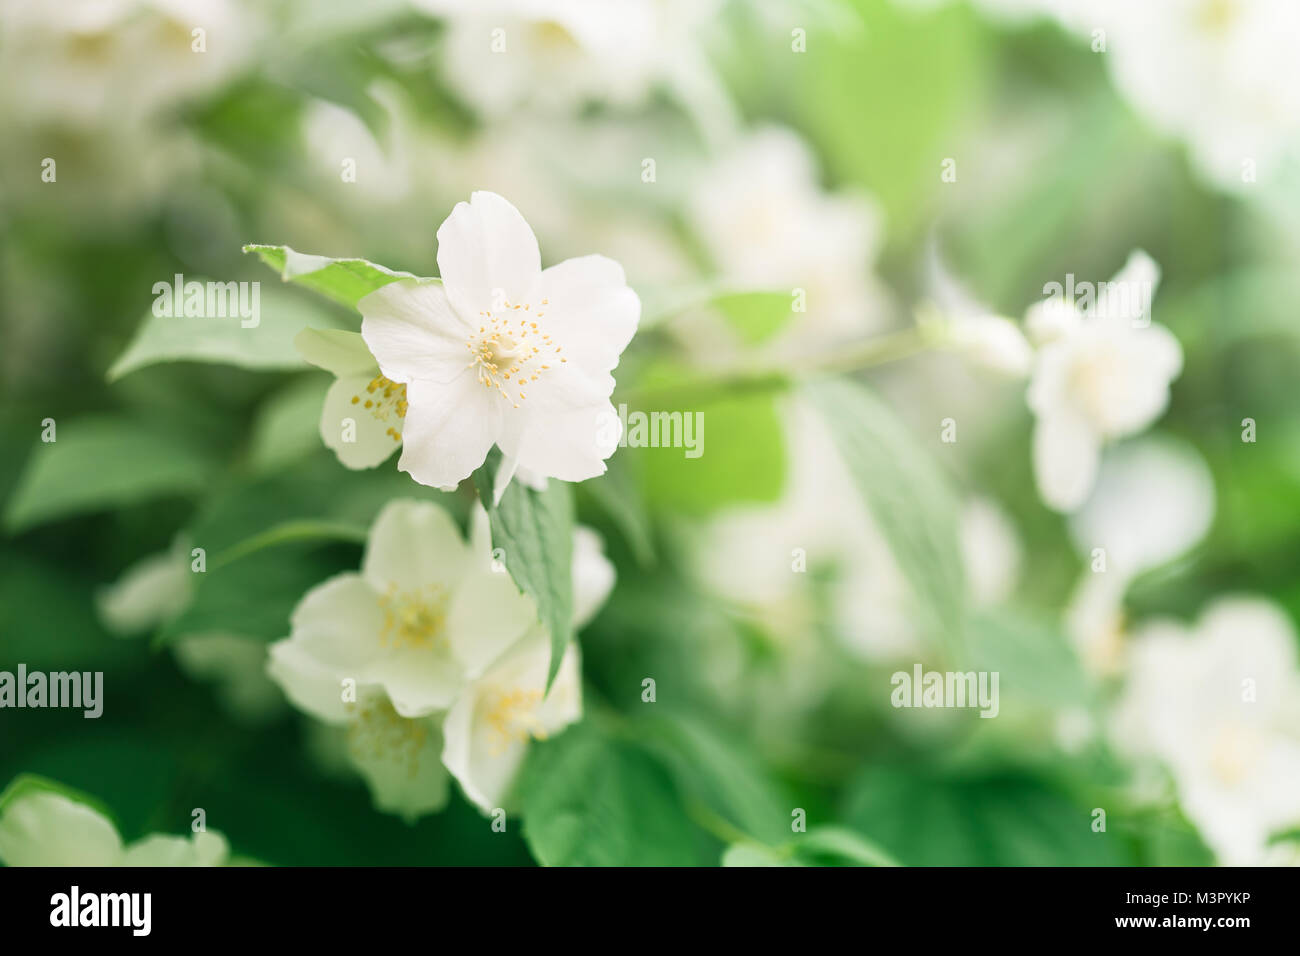 Close Up Jasmine Flowers In Garden Selective Focus Stock Photo